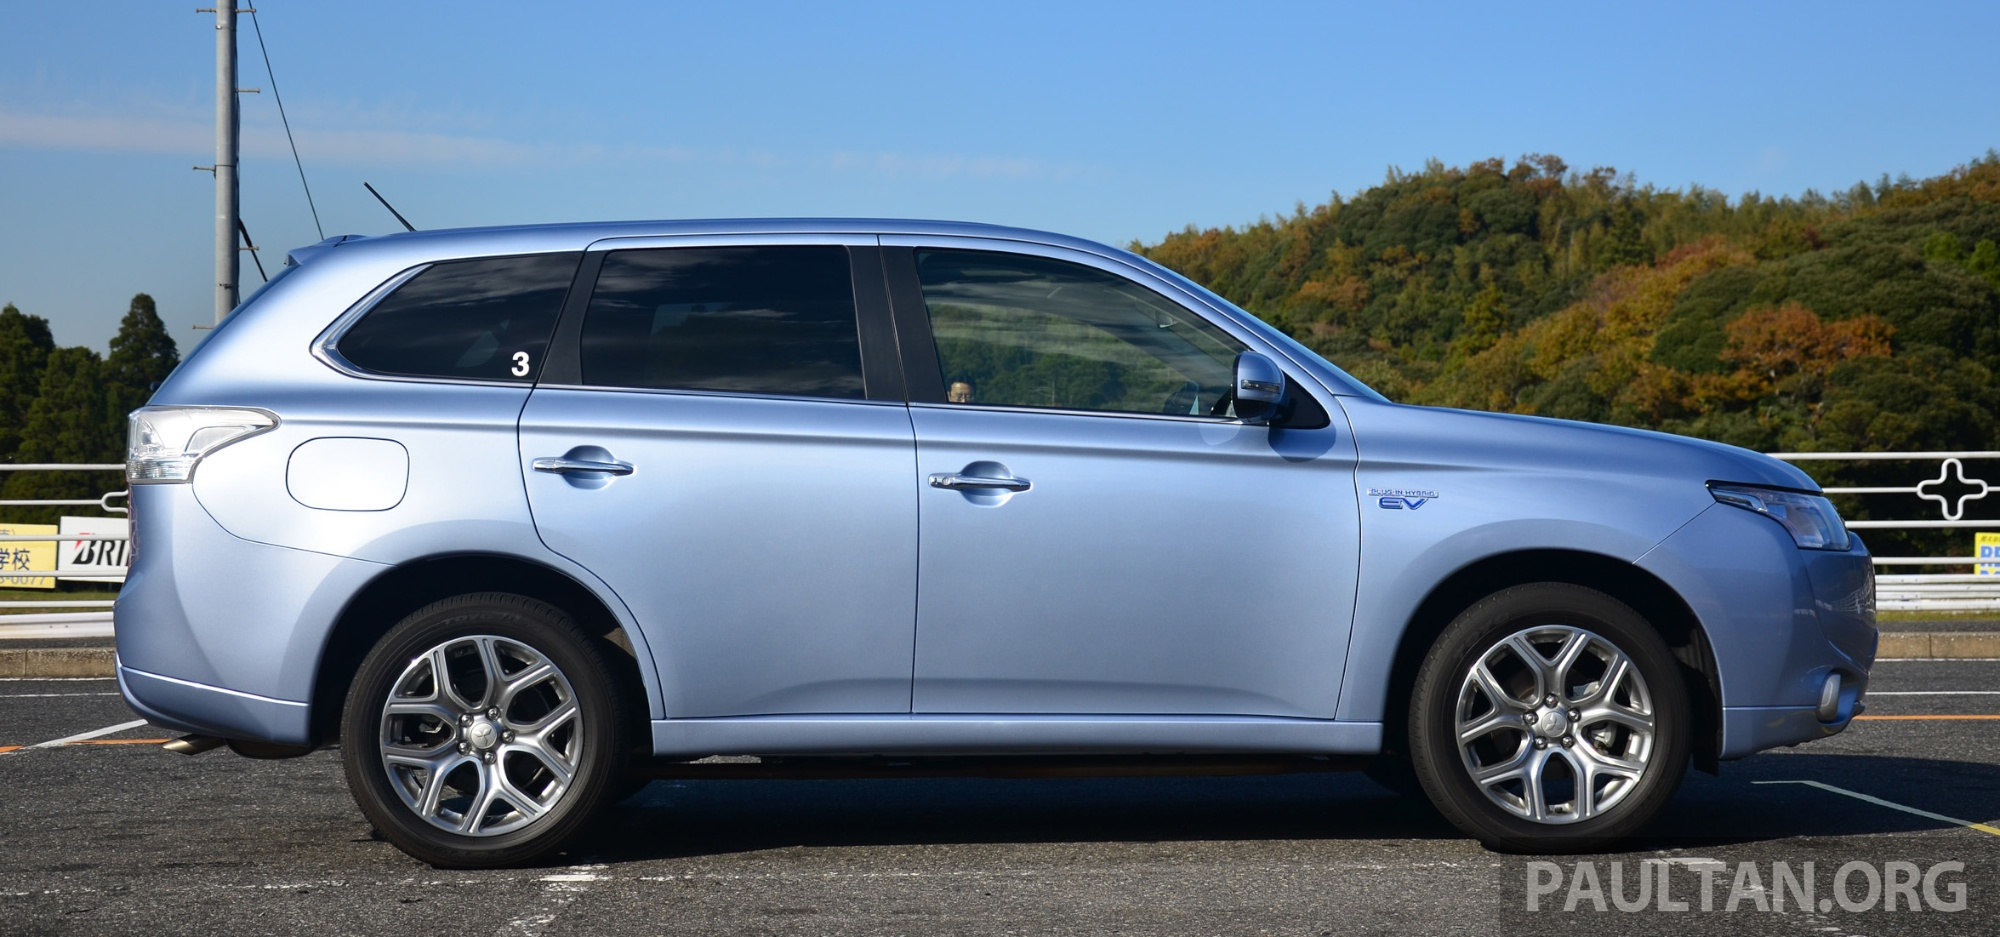 2018 Outlander Phev >> DRIVEN: Mitsubishi Outlander PHEV tested in Japan Paul Tan - Image 214689